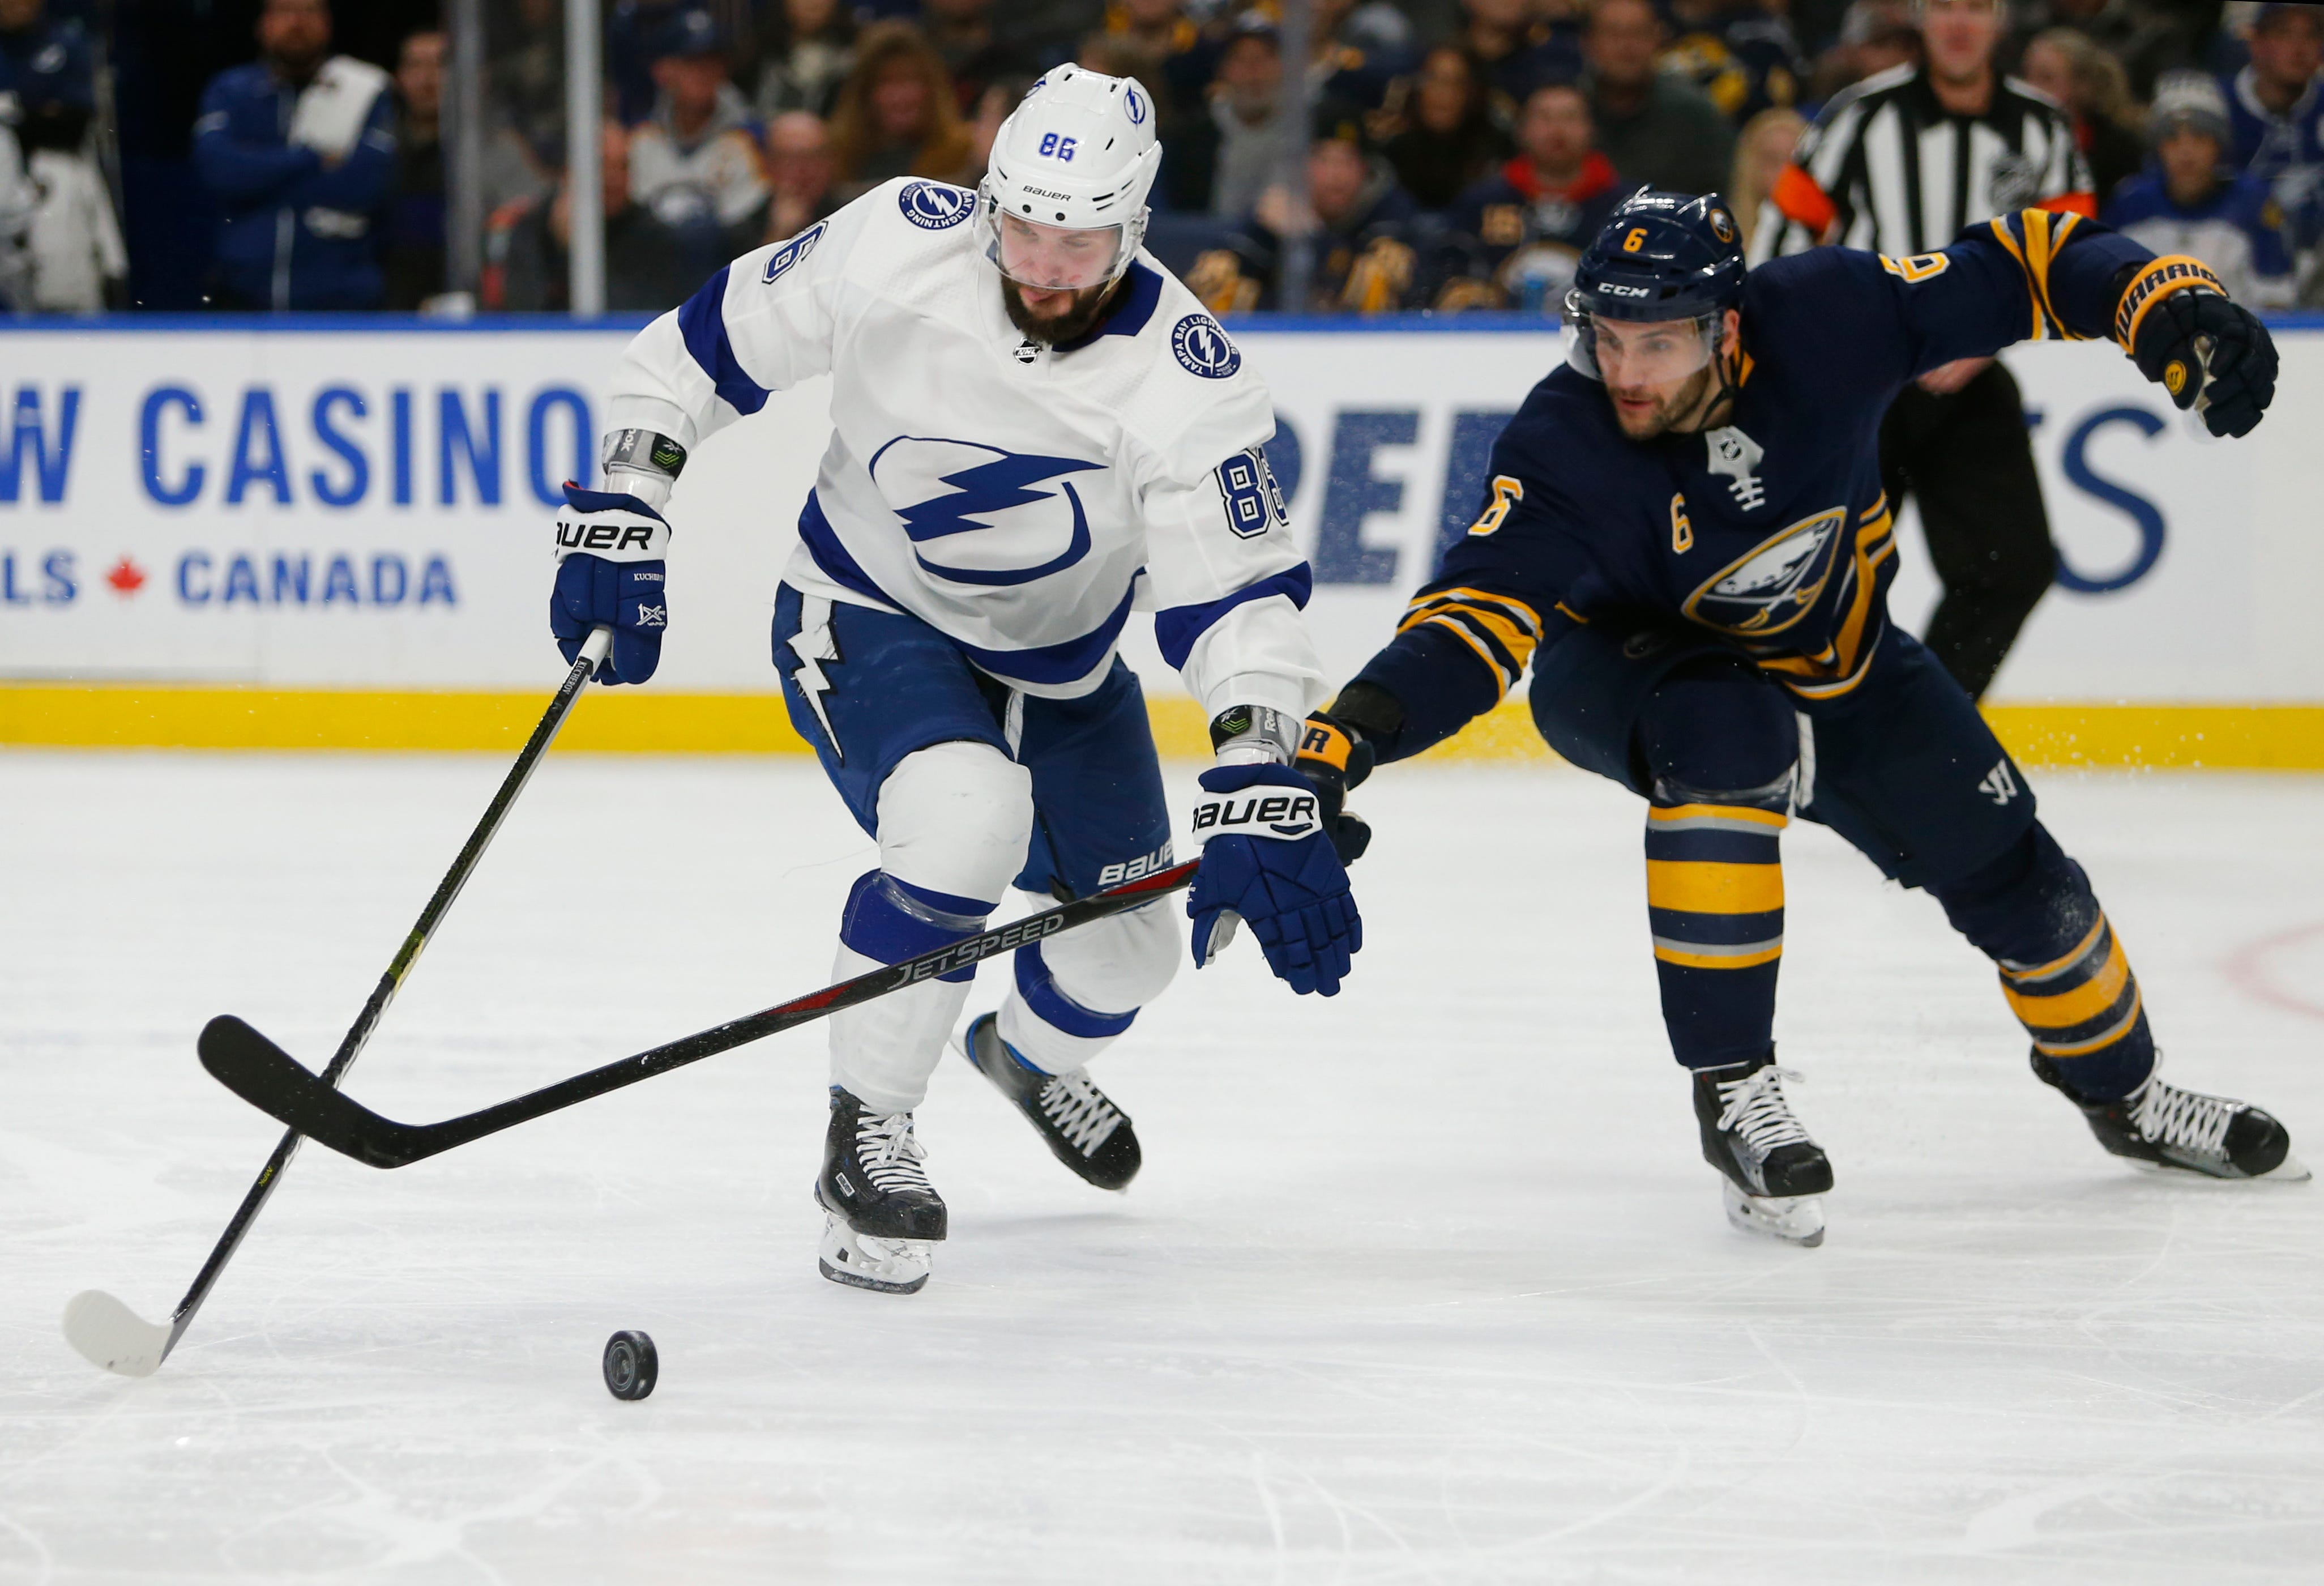 Stamkos scores go-ahead goal late, Lightning beat Sabres 5-3